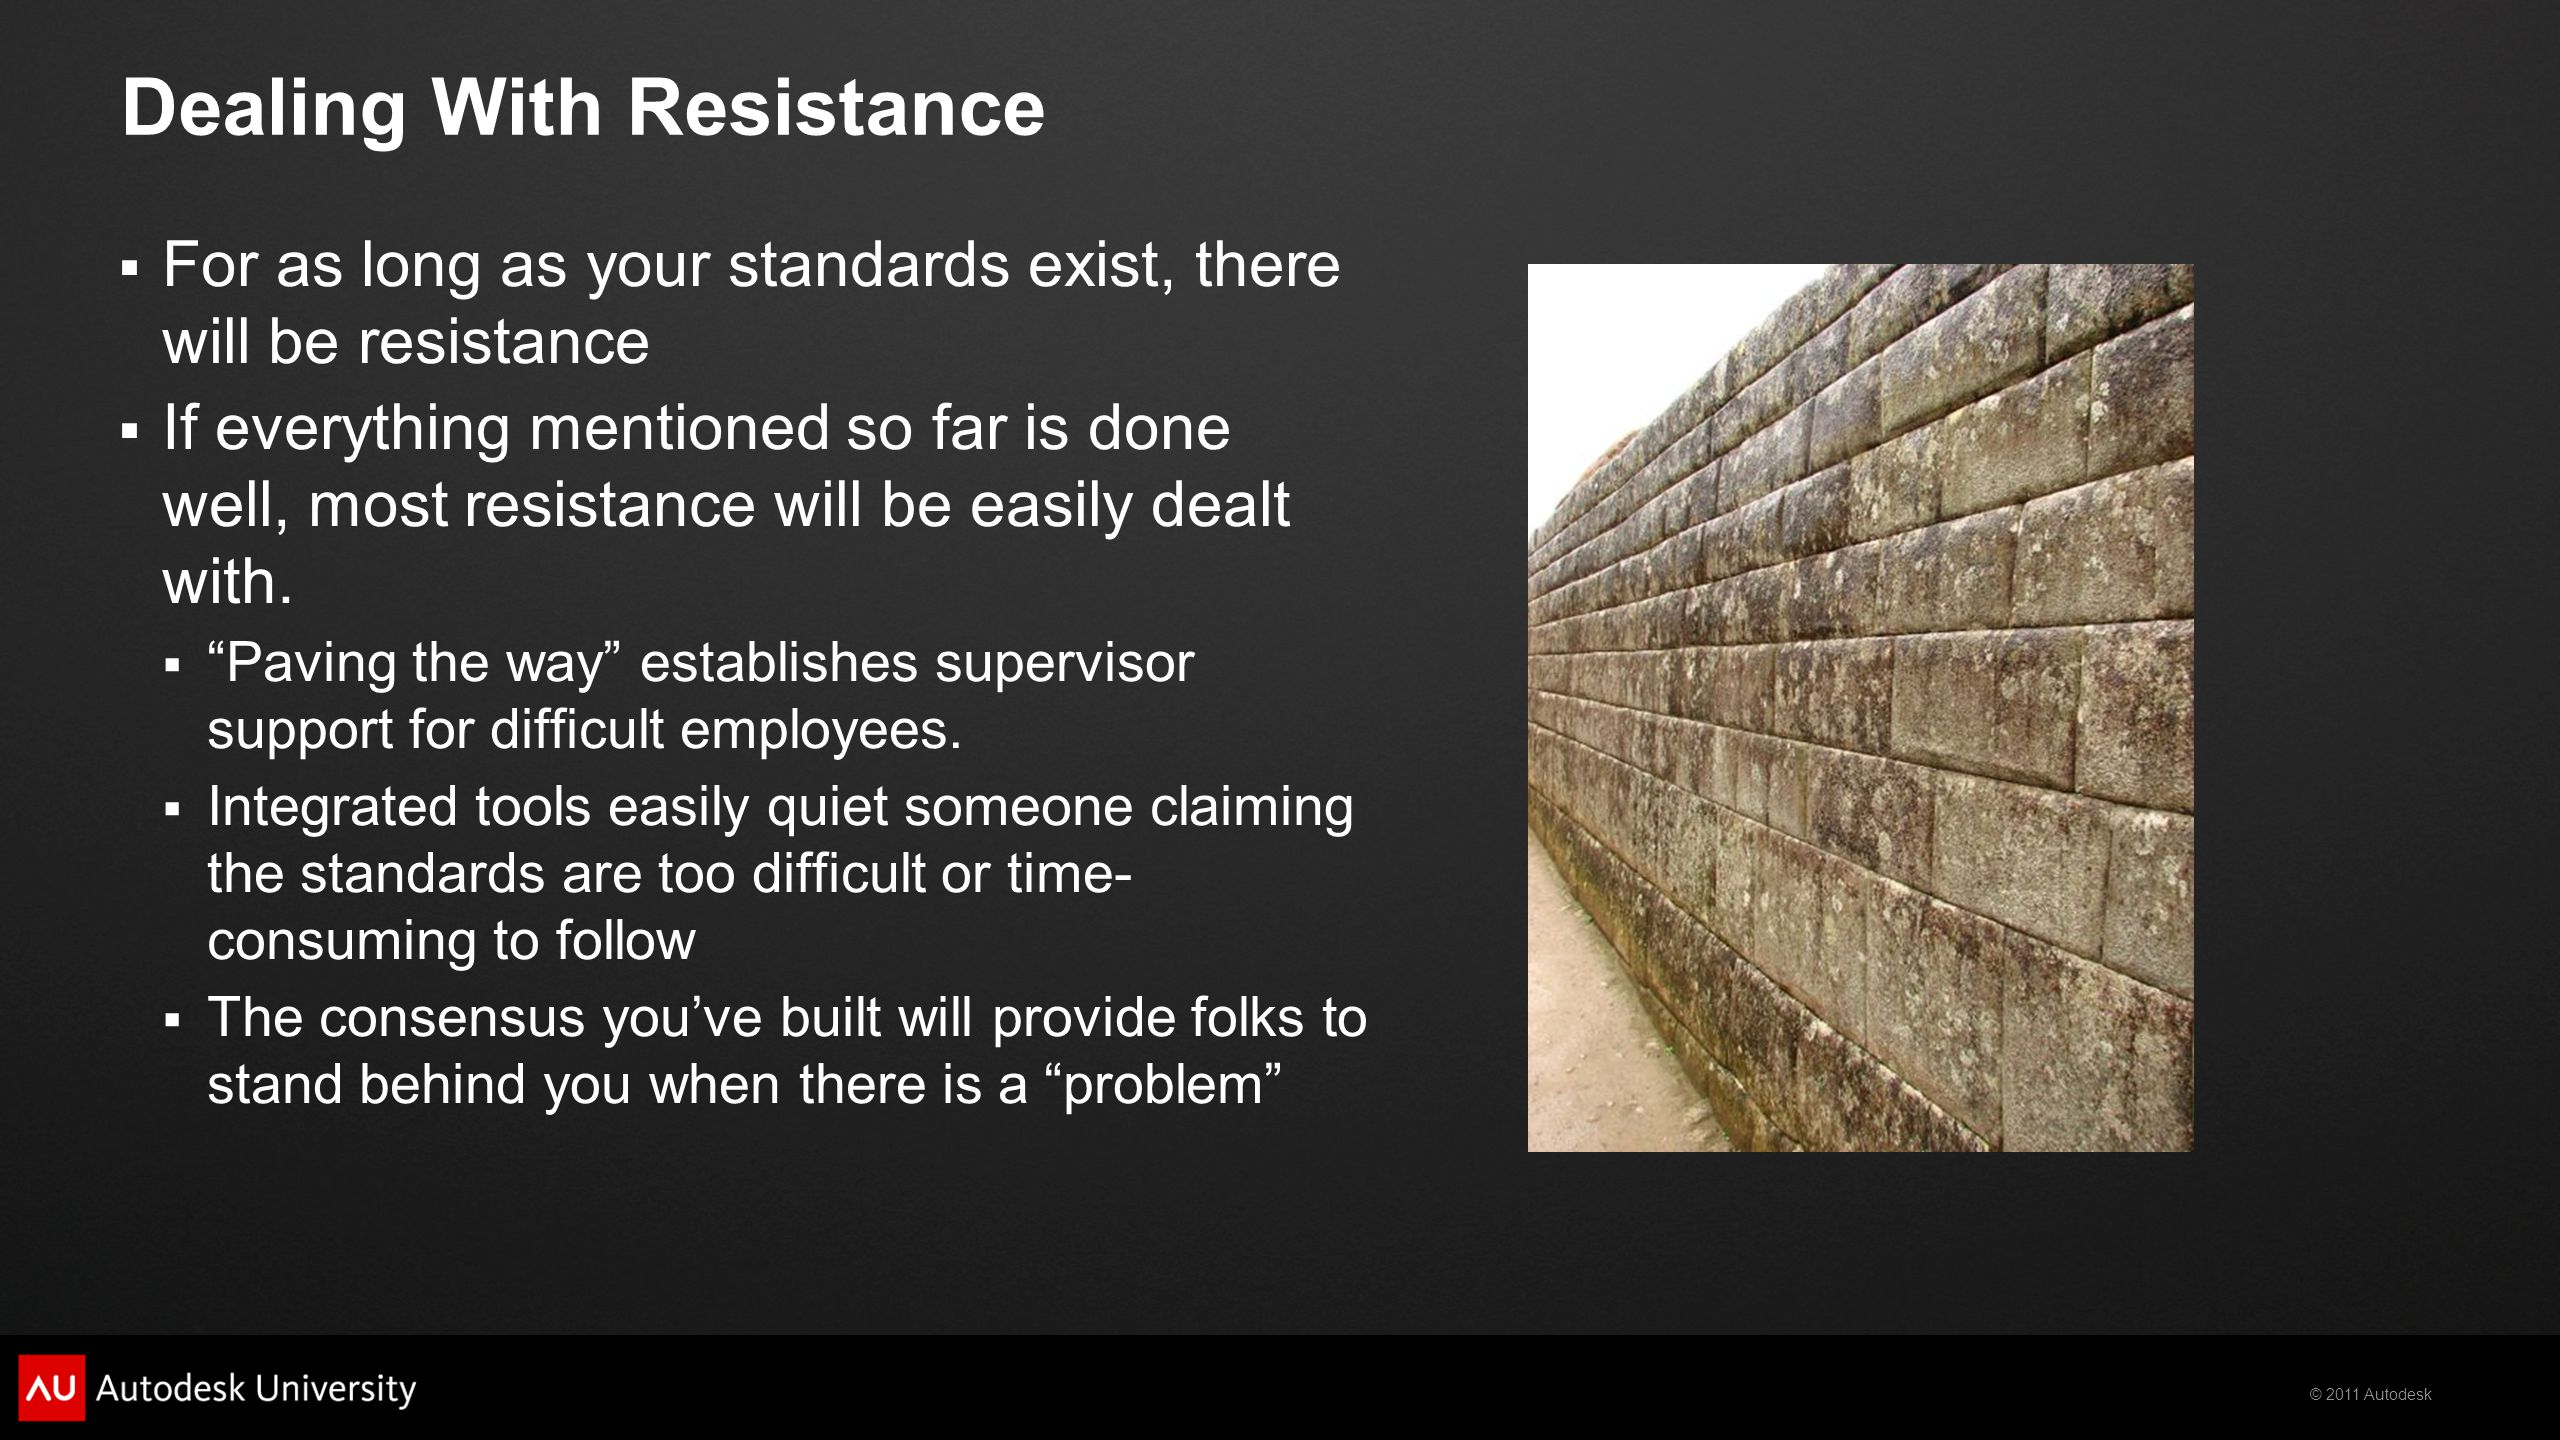 © 2011 Autodesk Dealing With Resistance  For as long as your standards exist, there will be resistance  If everything mentioned so far is done well, most resistance will be easily dealt with.